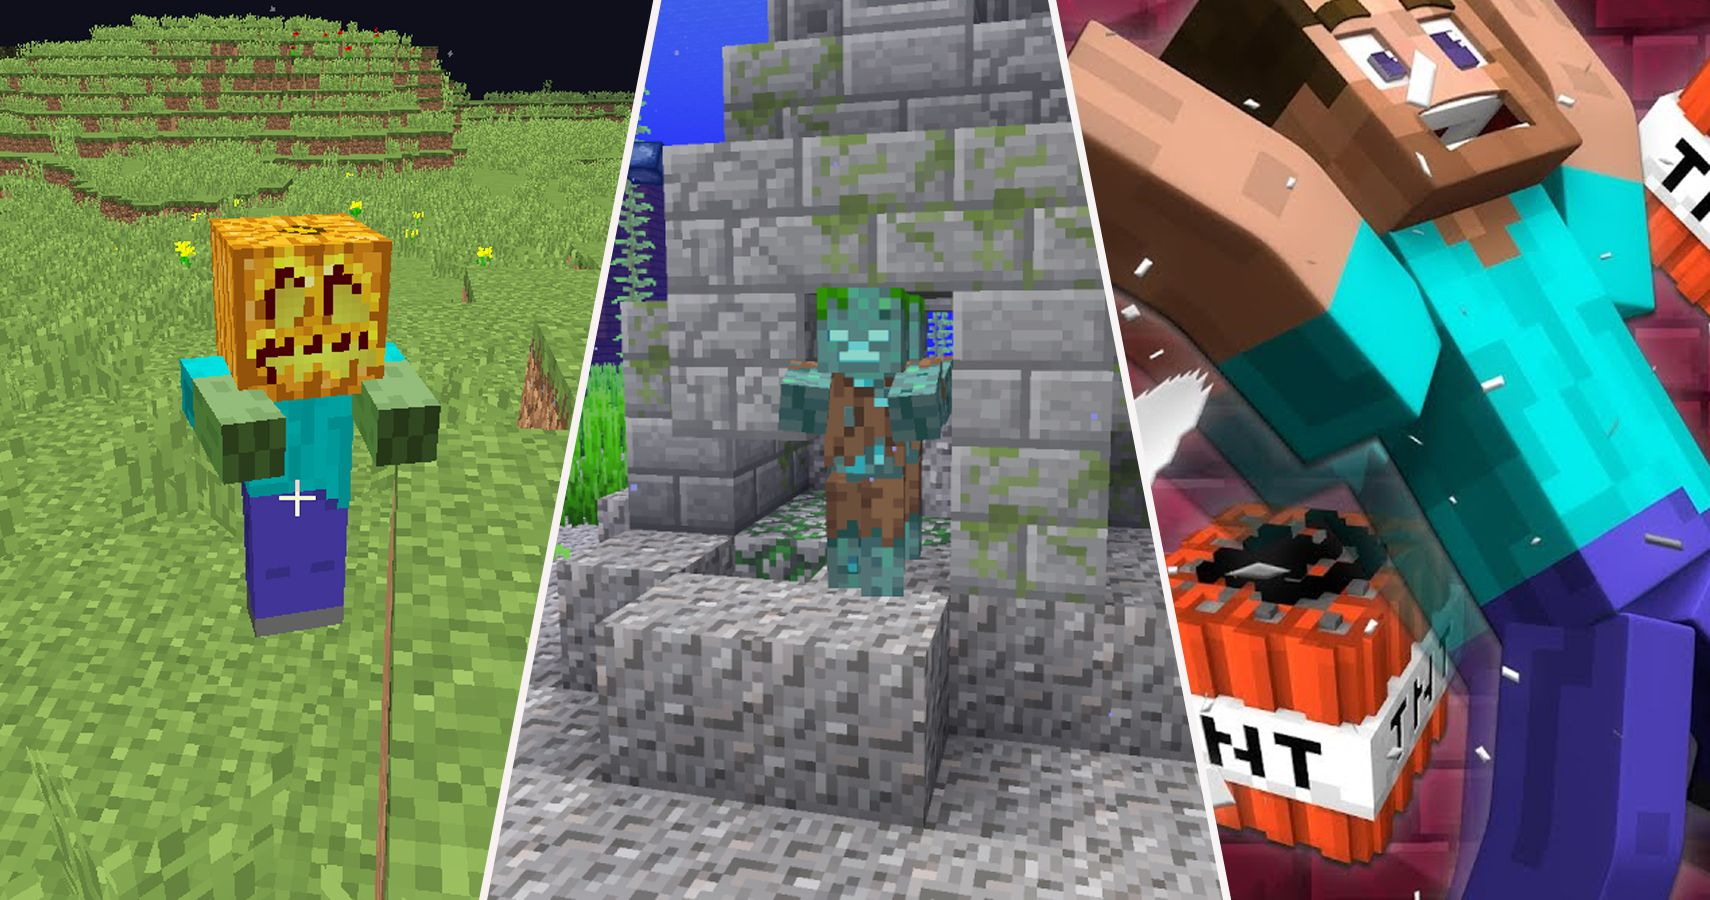 Minecraft: 25 Tricks From The Game Players Have No Idea About